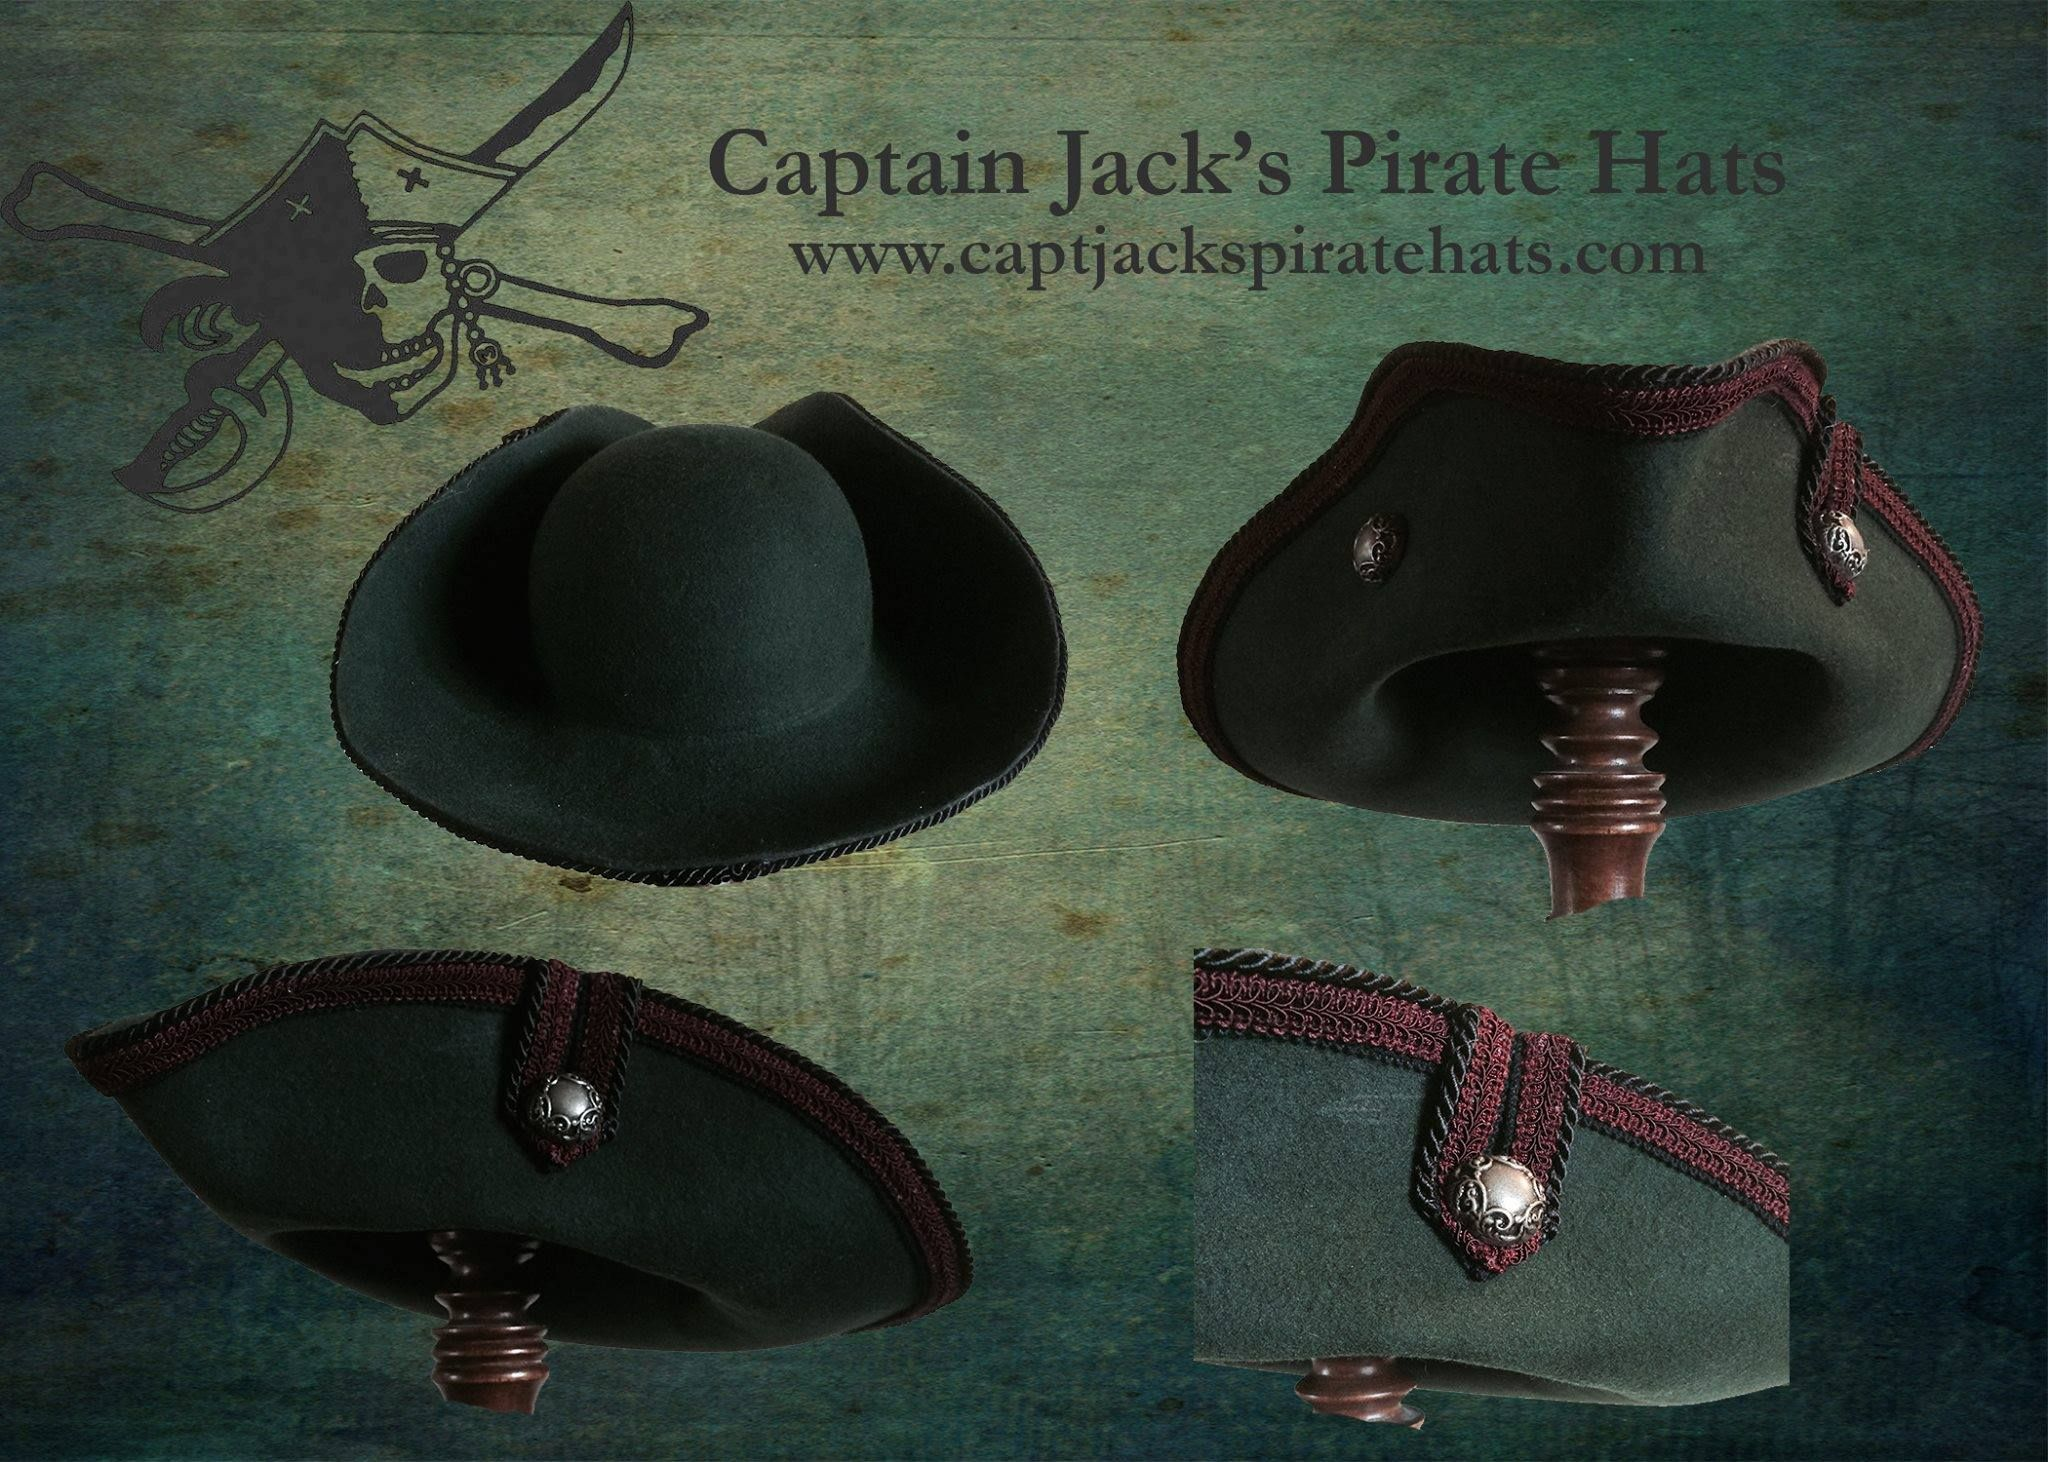 Buccaneer Pirata Hybrid Custom Made Handcrafted Authentic Pirate Hats By Master Hatter Jeff Mackay Real Pirates Real Hats The Hat Pirate Hats Jack Hat Hats